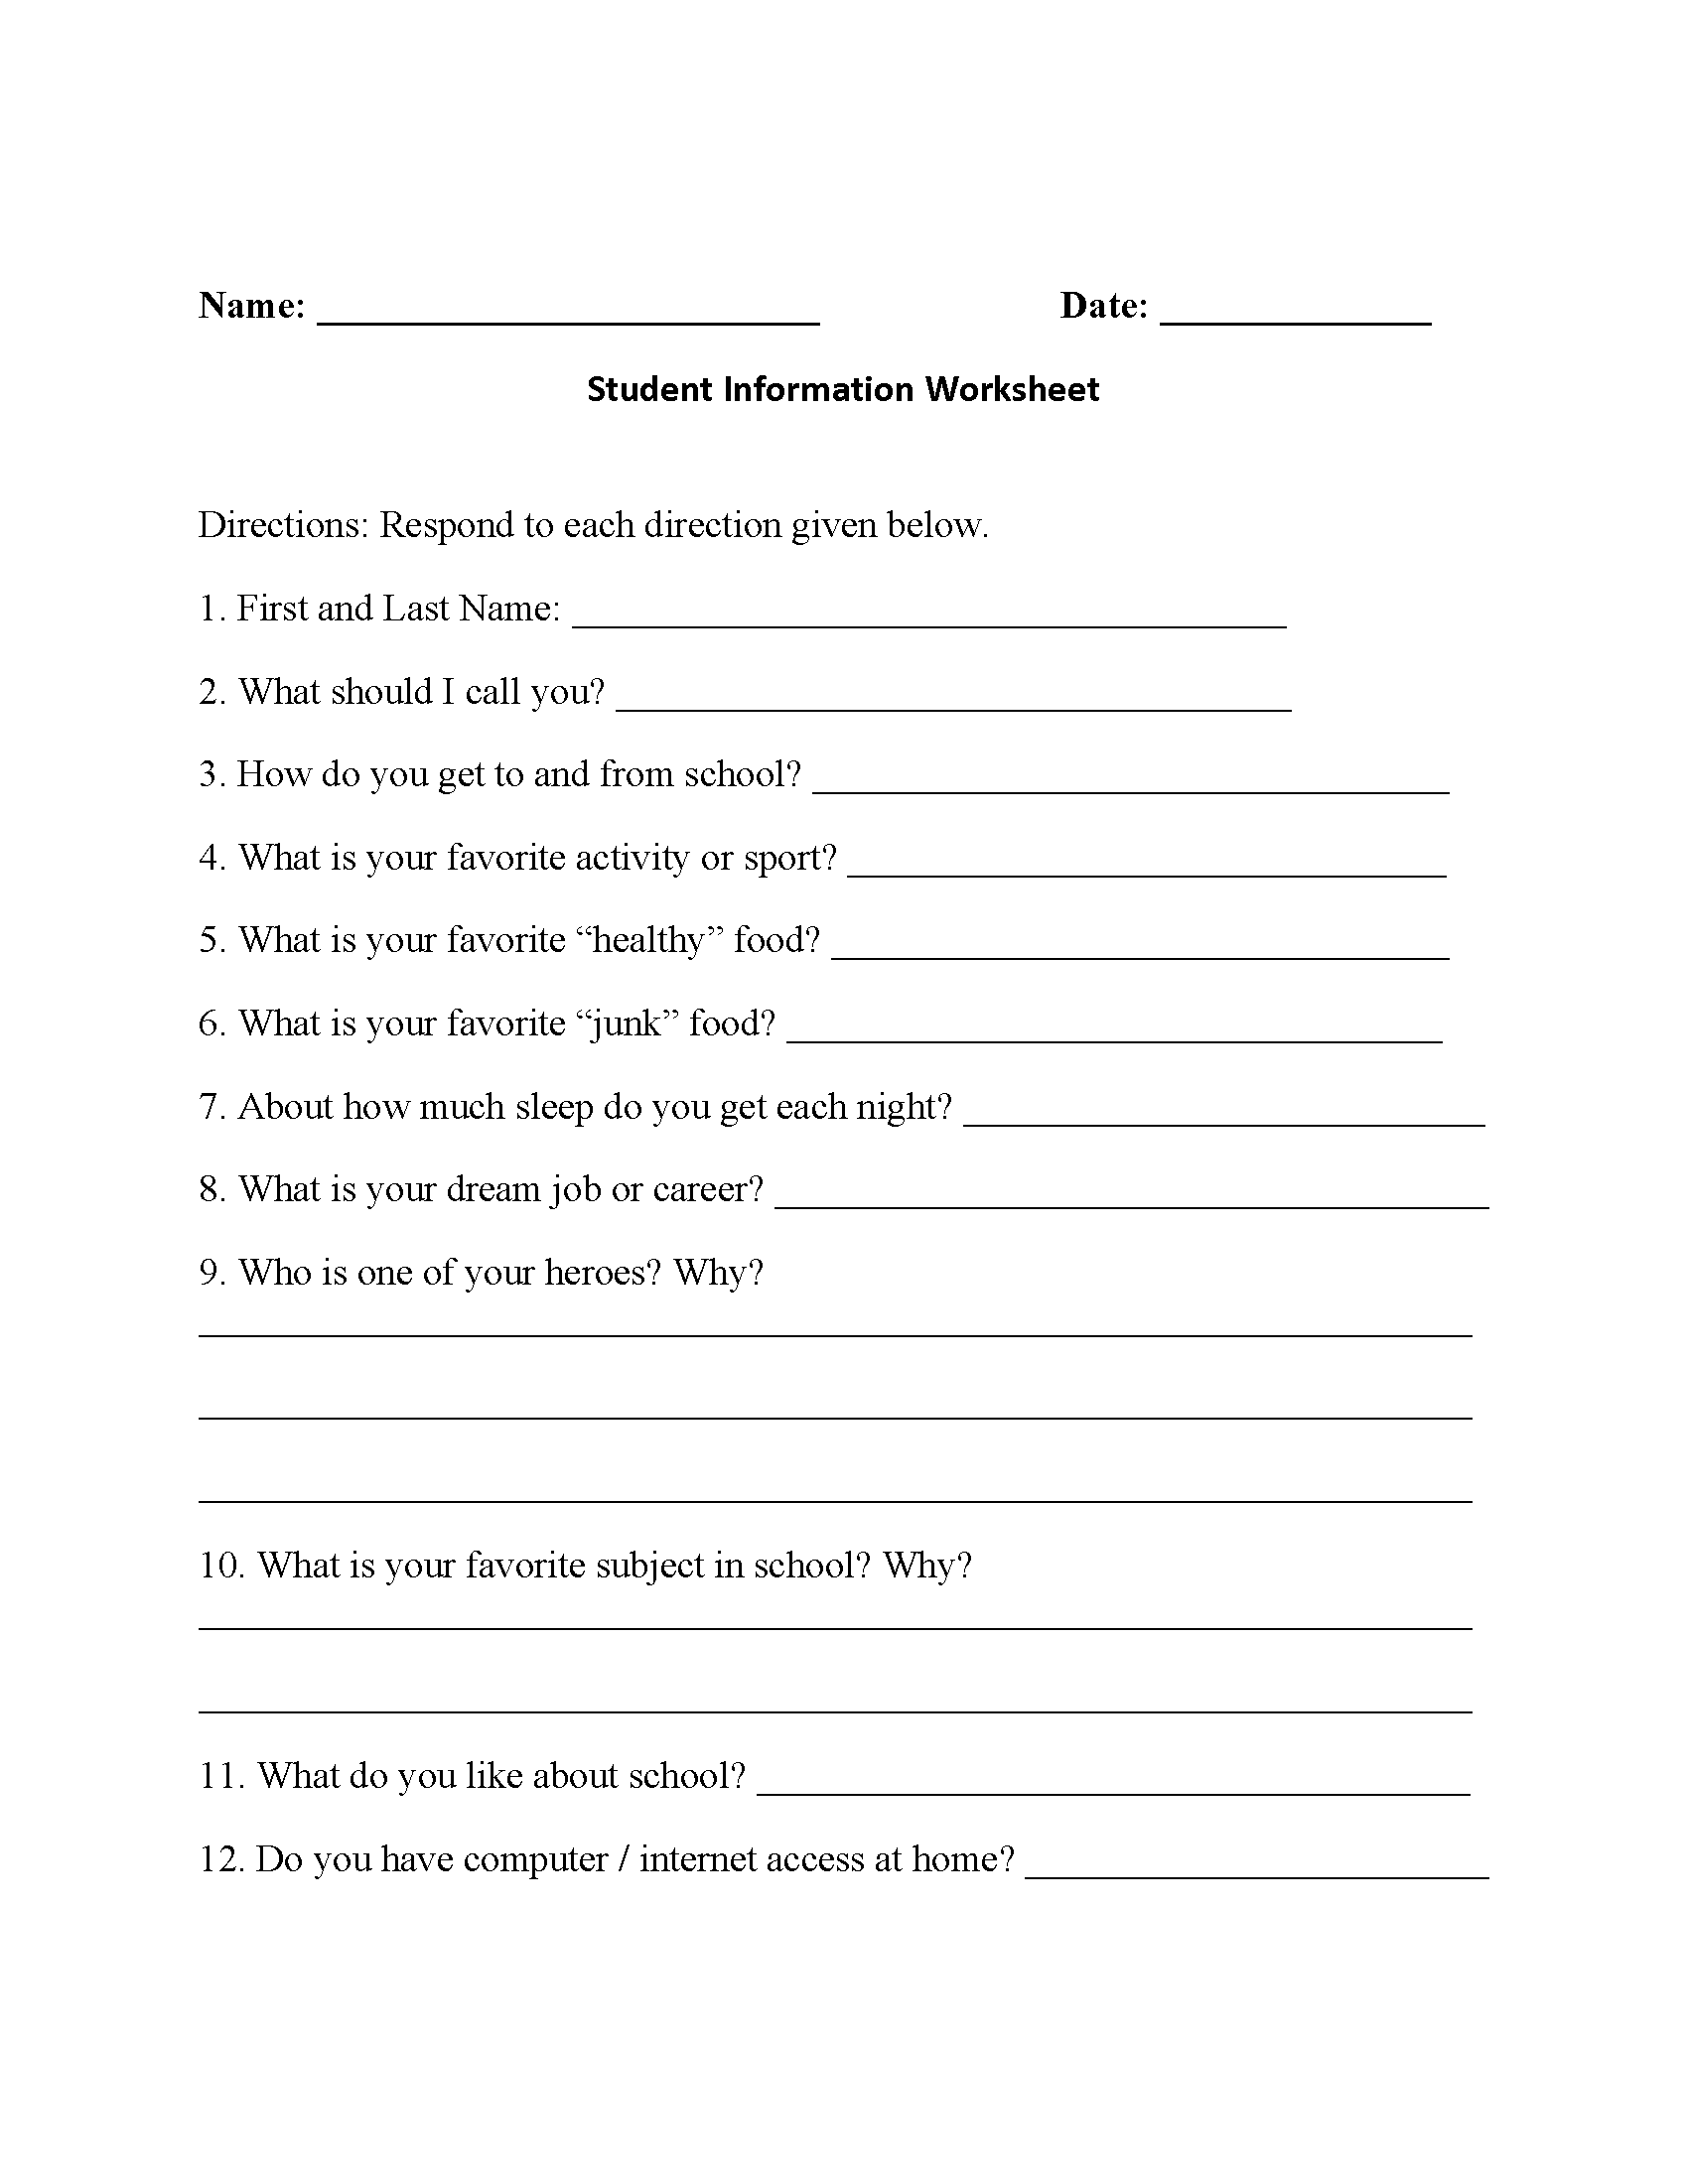 Student Information Back To School Worksheets